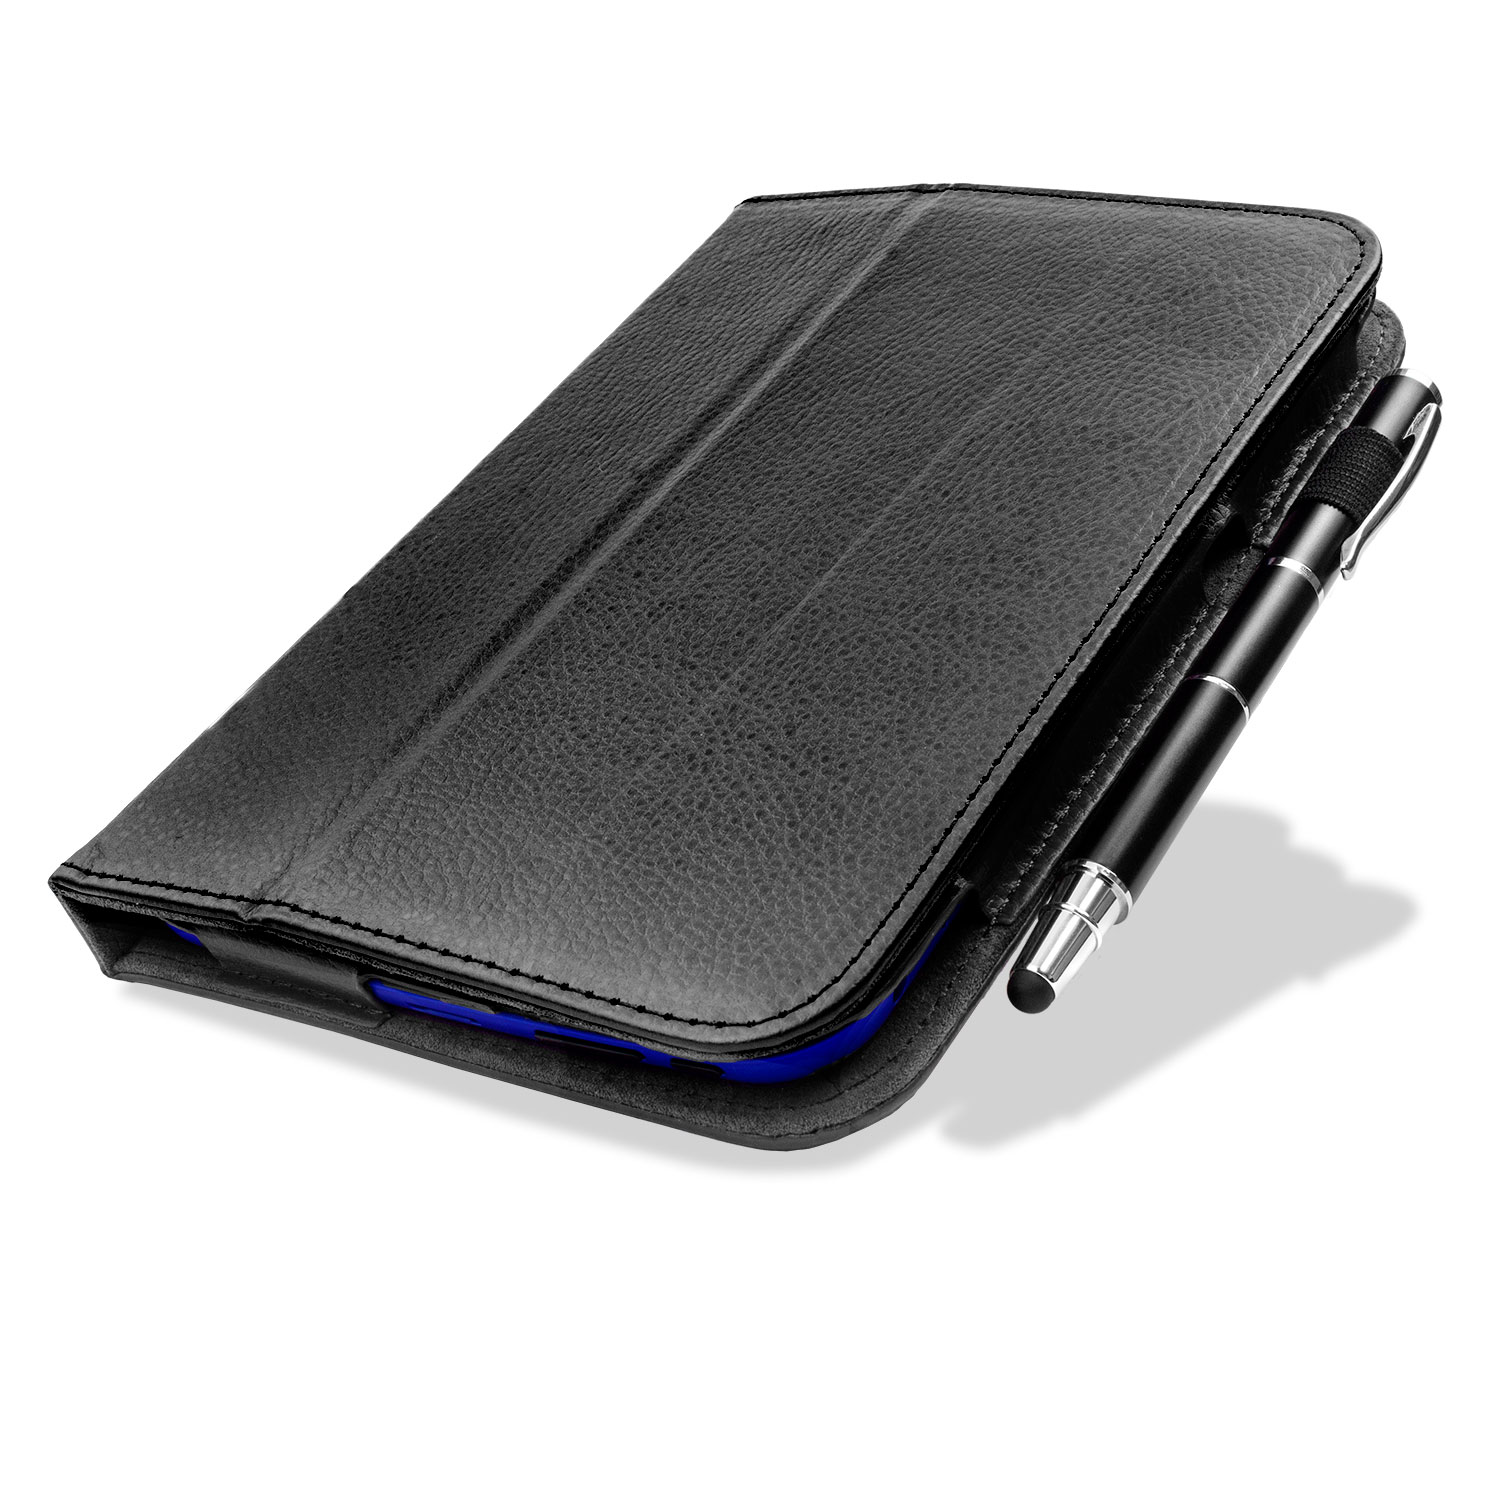 Folio Leather Case with Stand and Hand Grip for Tesco Hudl - Black